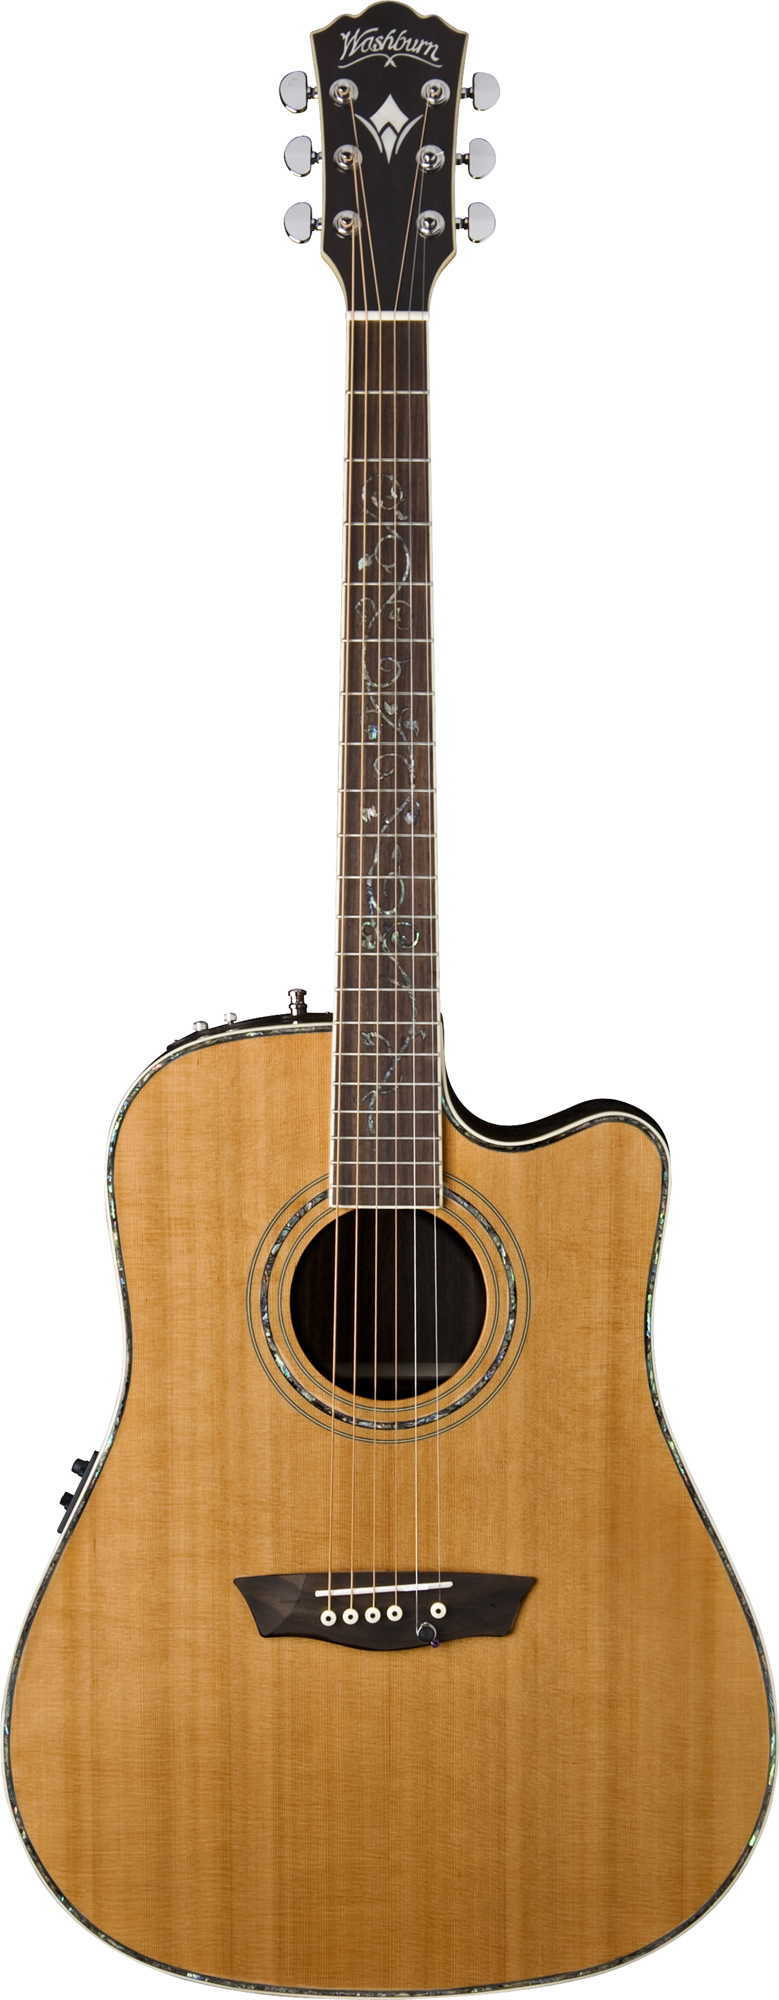 washburn wdflb26sce acoustic guitar with solid cedar top natural finish was12 wdflb26sce. Black Bedroom Furniture Sets. Home Design Ideas